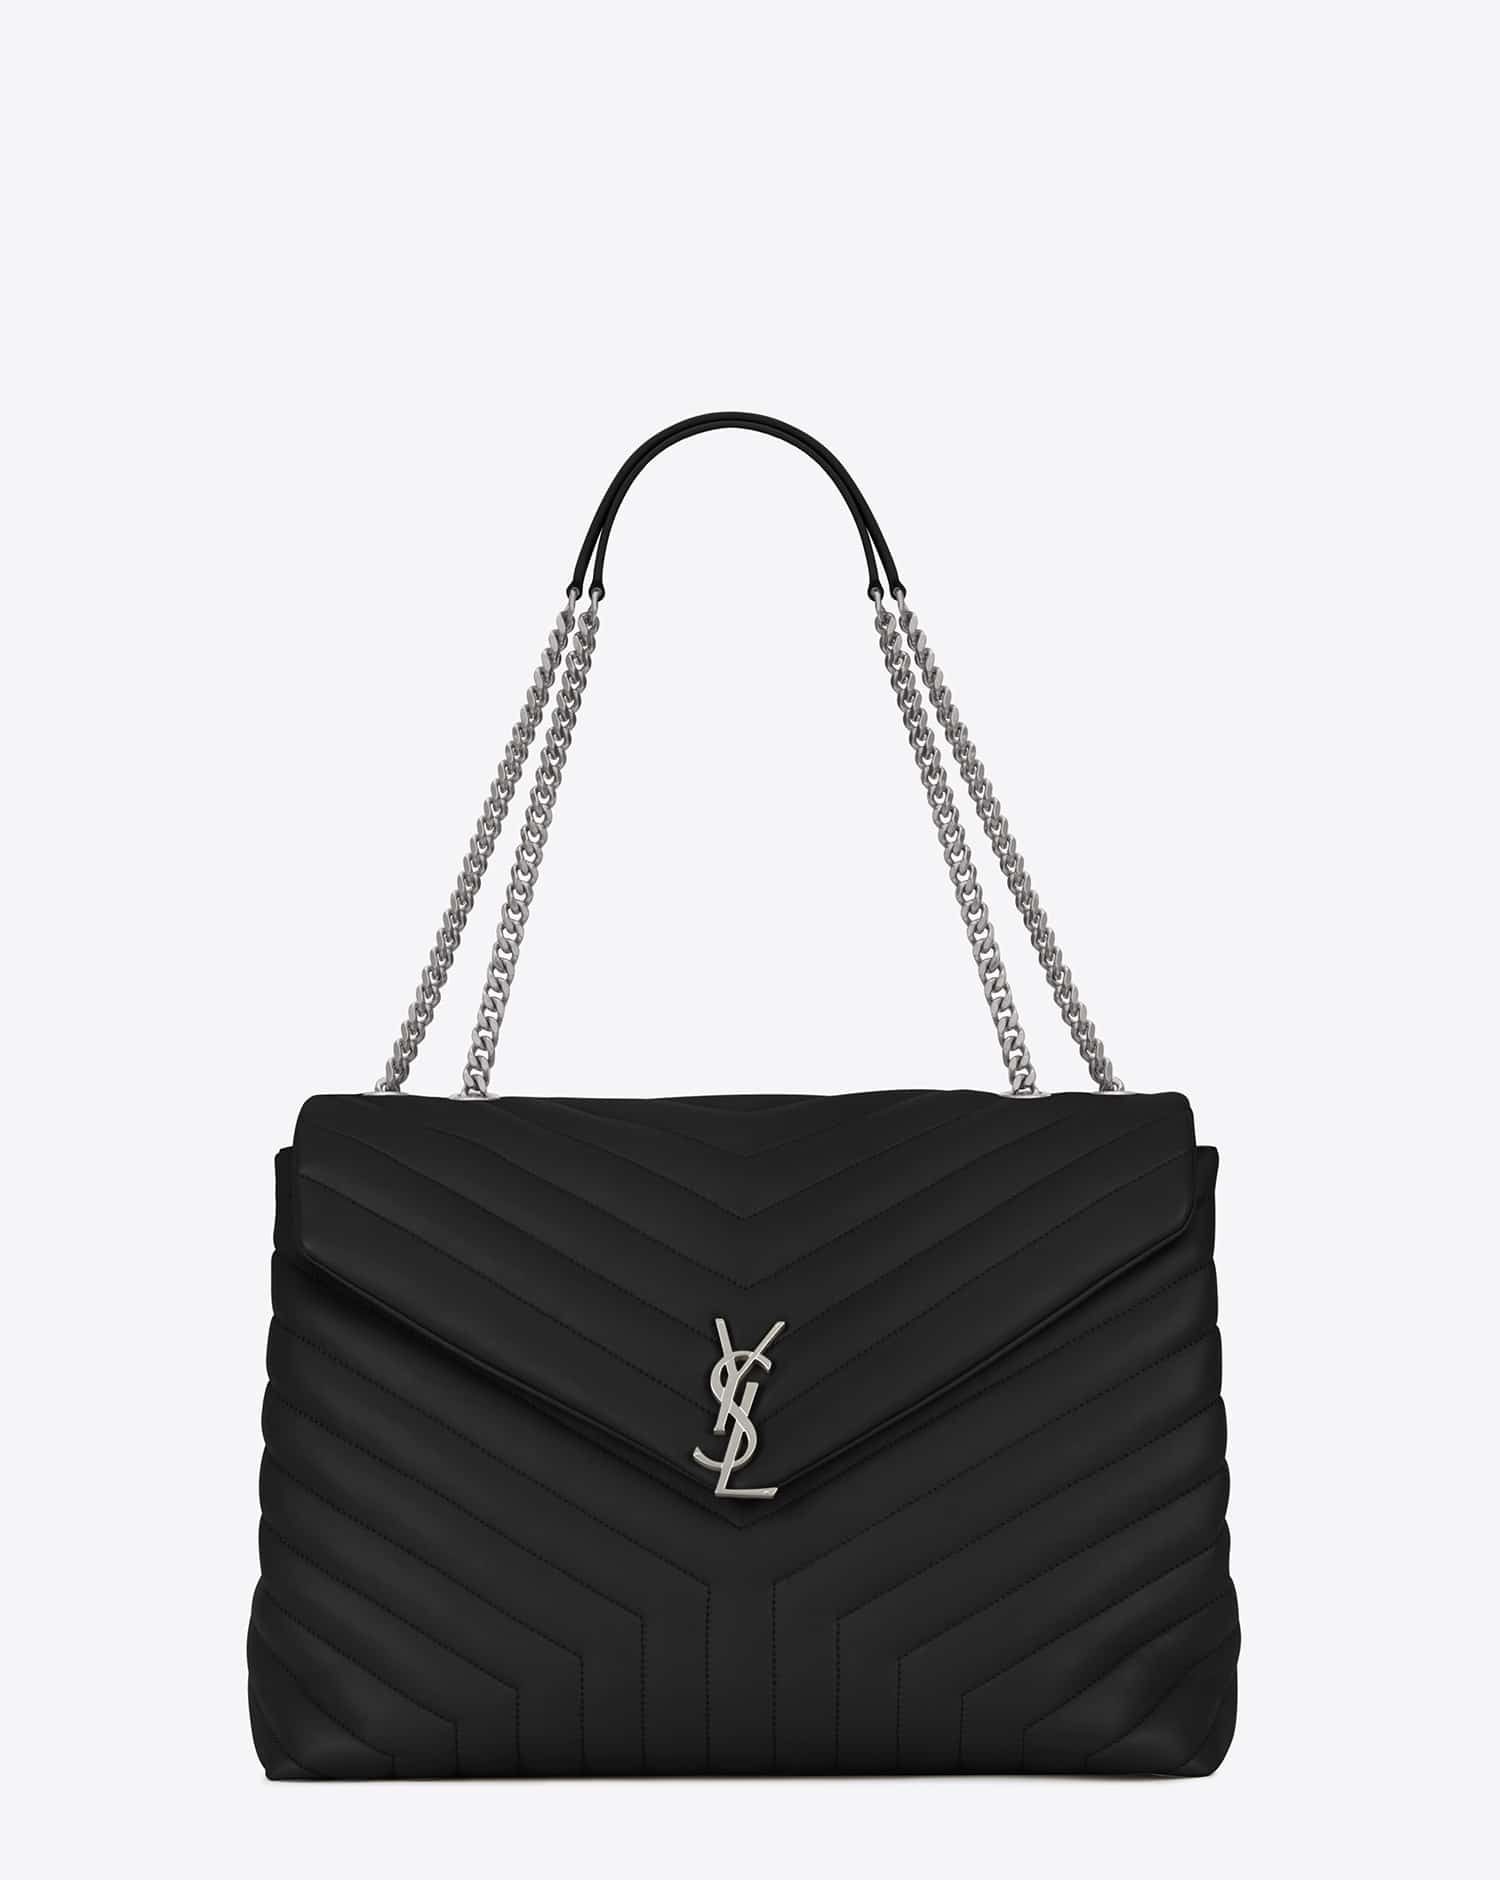 f978d7b21378 Saint Laurent Cruise 2017 Bag Collection – Spotted Fashion